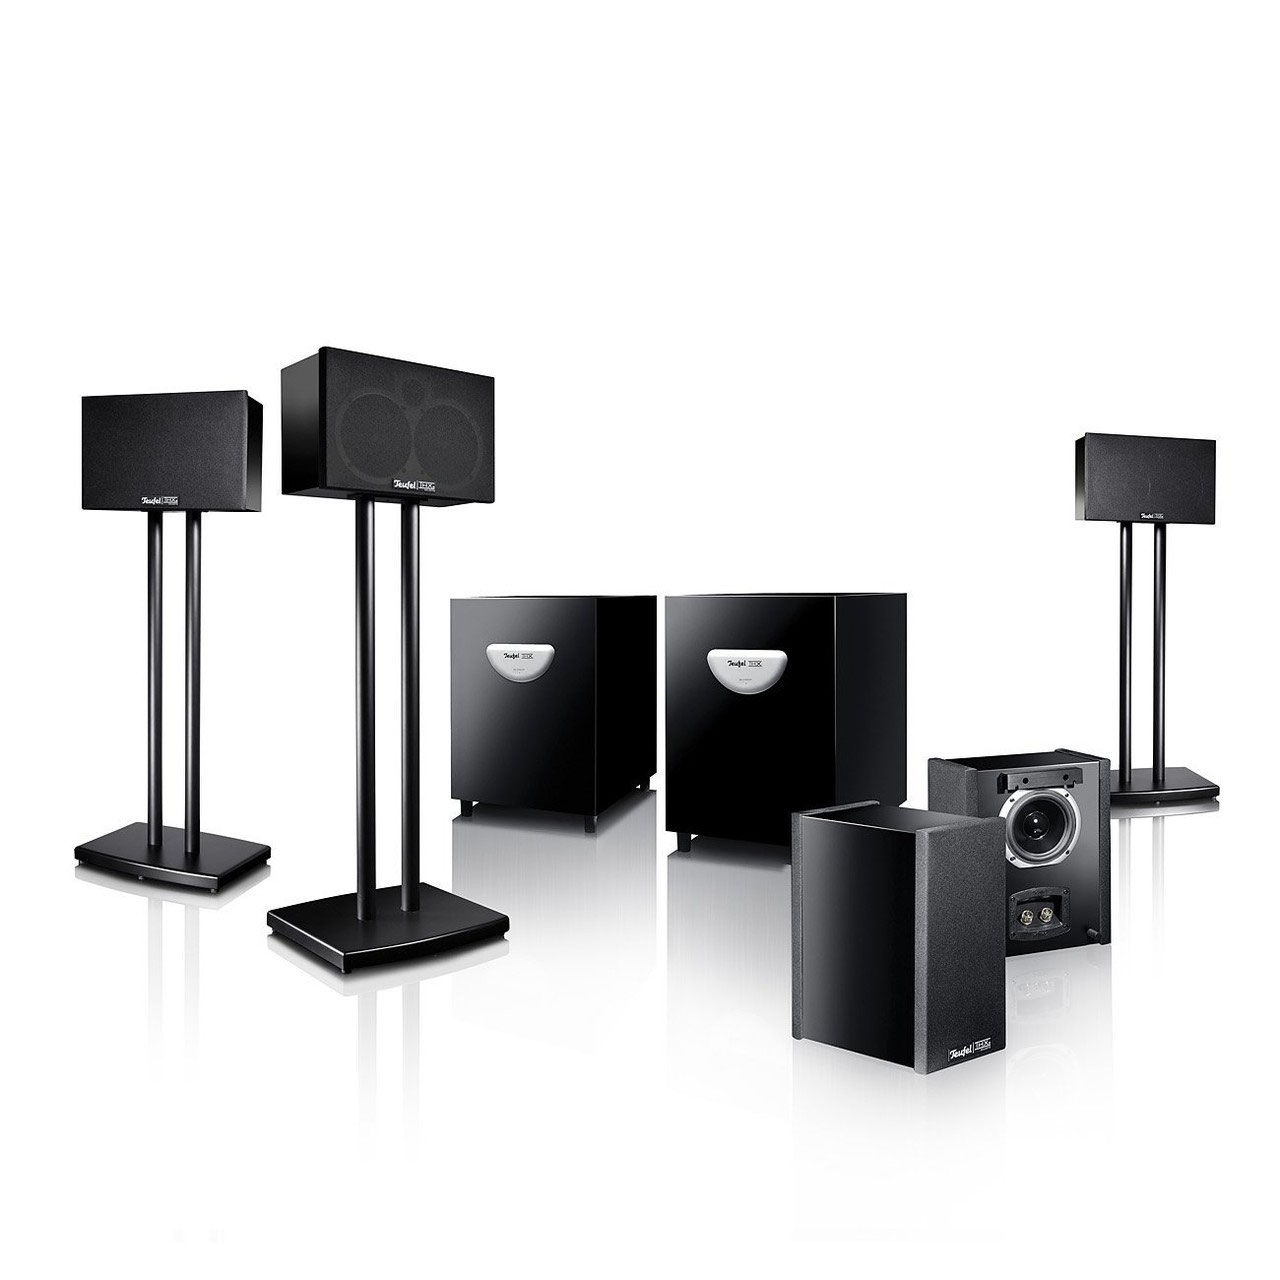 teufel system 5 thx select 2 zertifikat test fernseher tests. Black Bedroom Furniture Sets. Home Design Ideas